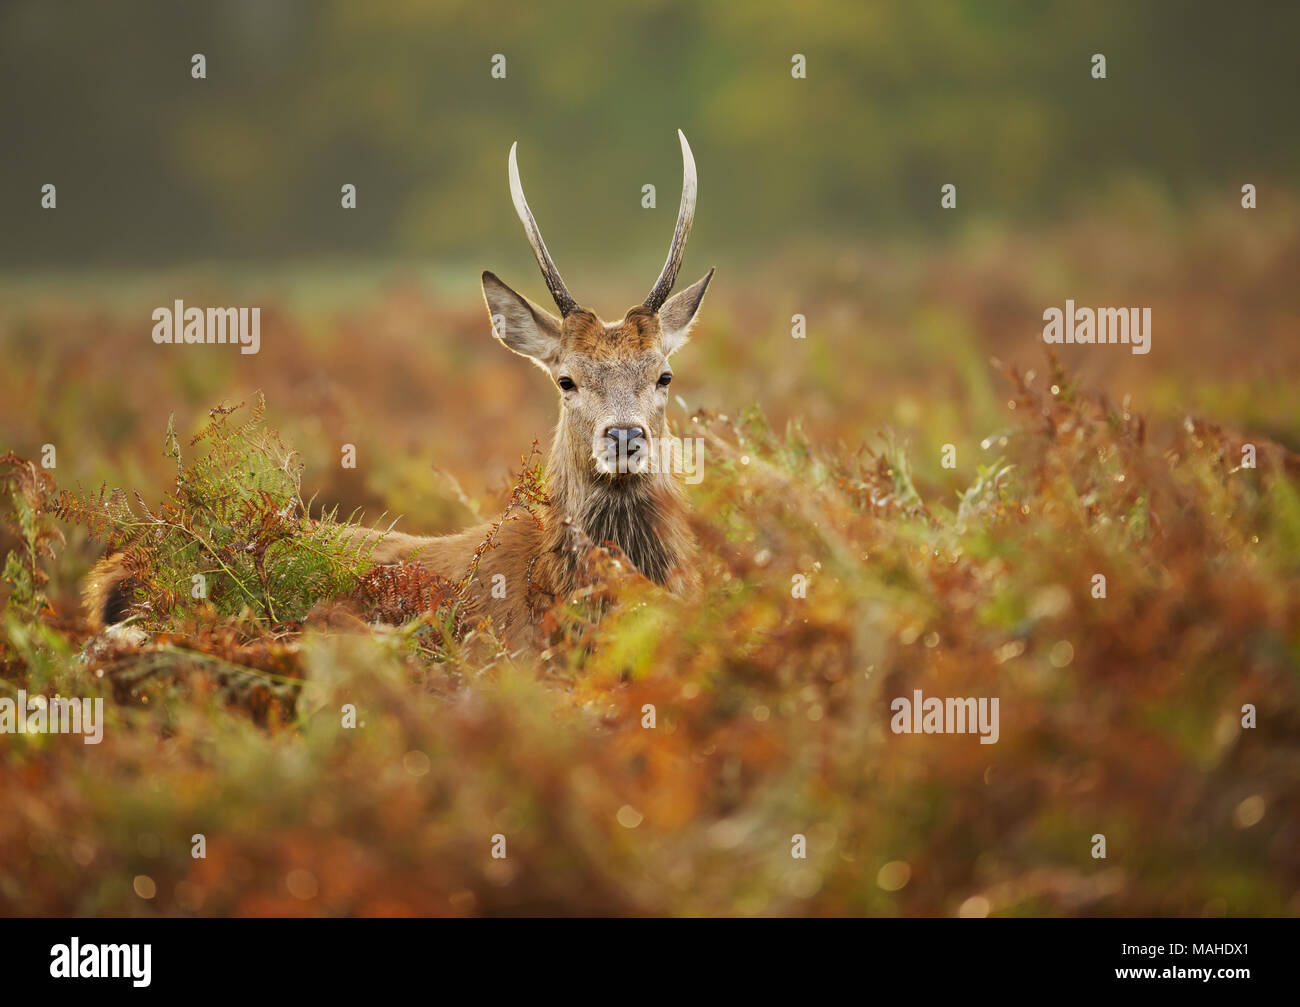 Close up of a young red deer stag in the field of fern in autumn, UK. Urban wildlife, London. - Stock Image